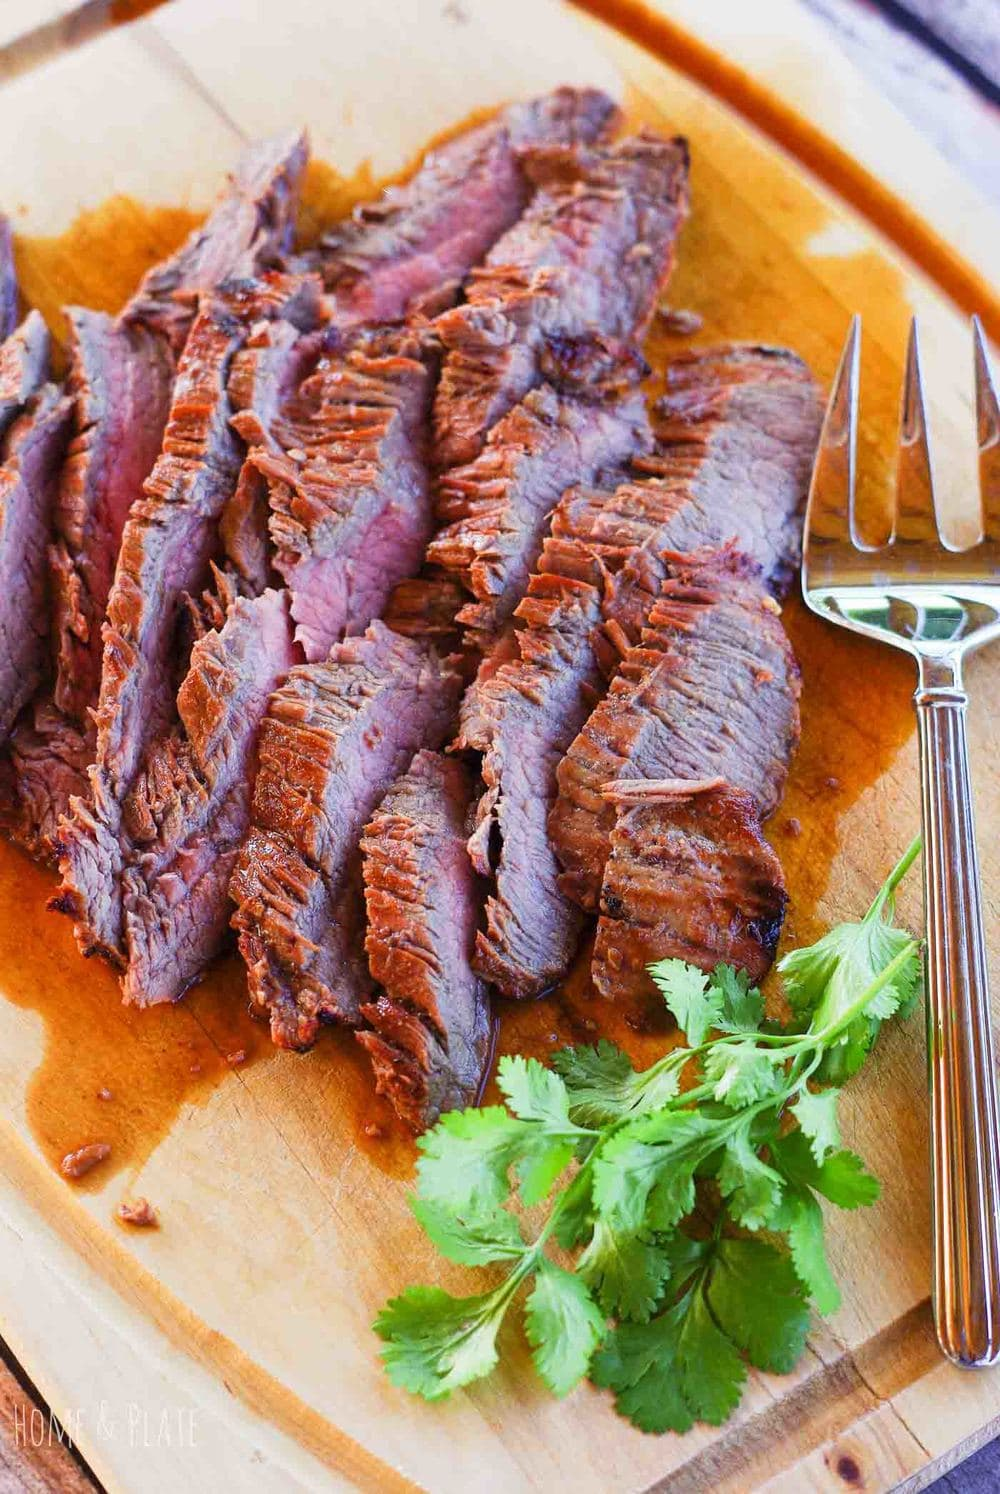 A board of thinly cut pieces of flank steak.